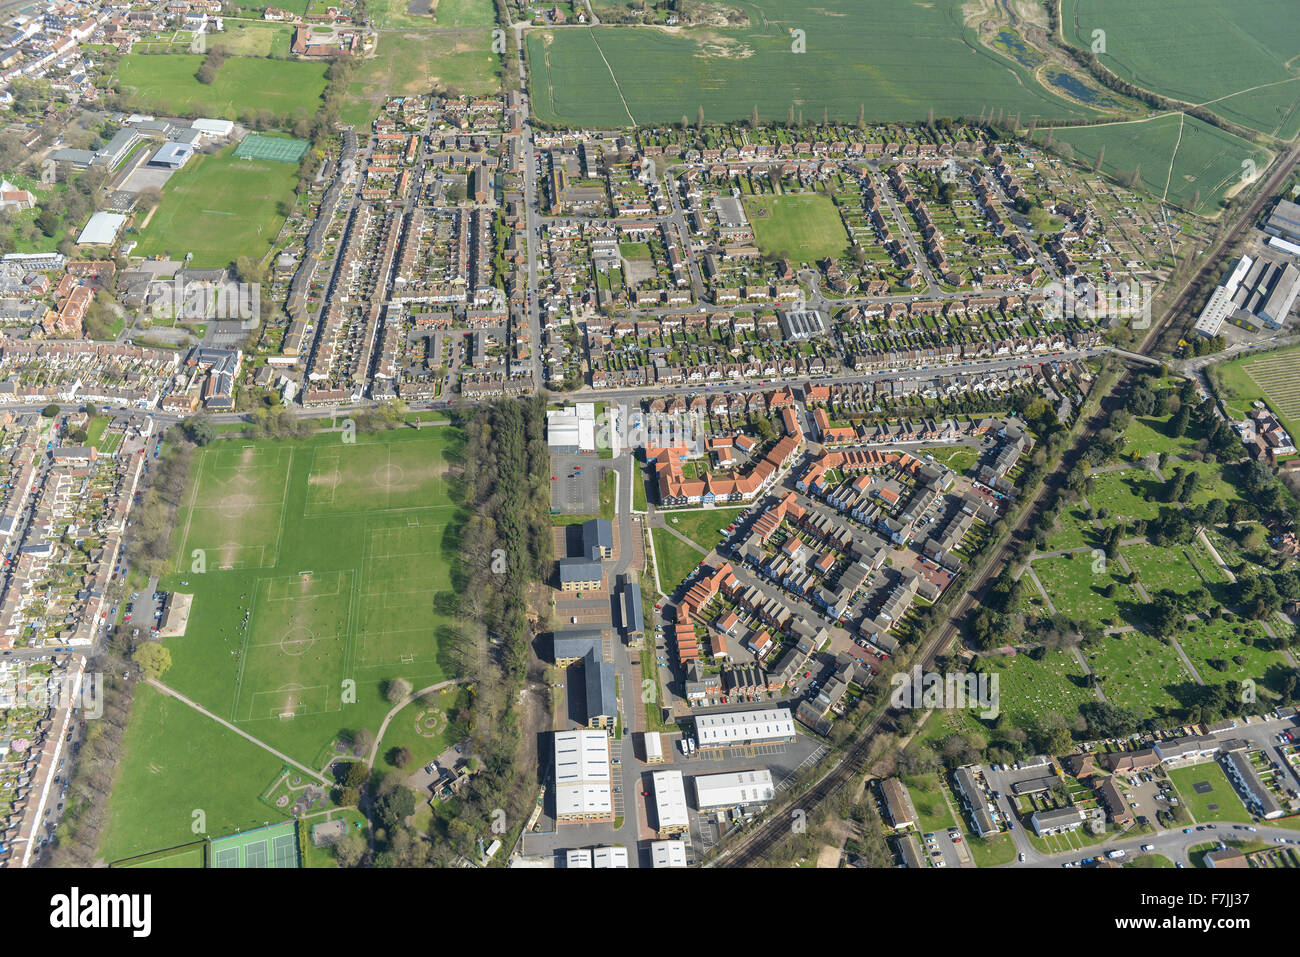 An aerial view of Faversham, a market town in Kent, UK - Stock Image